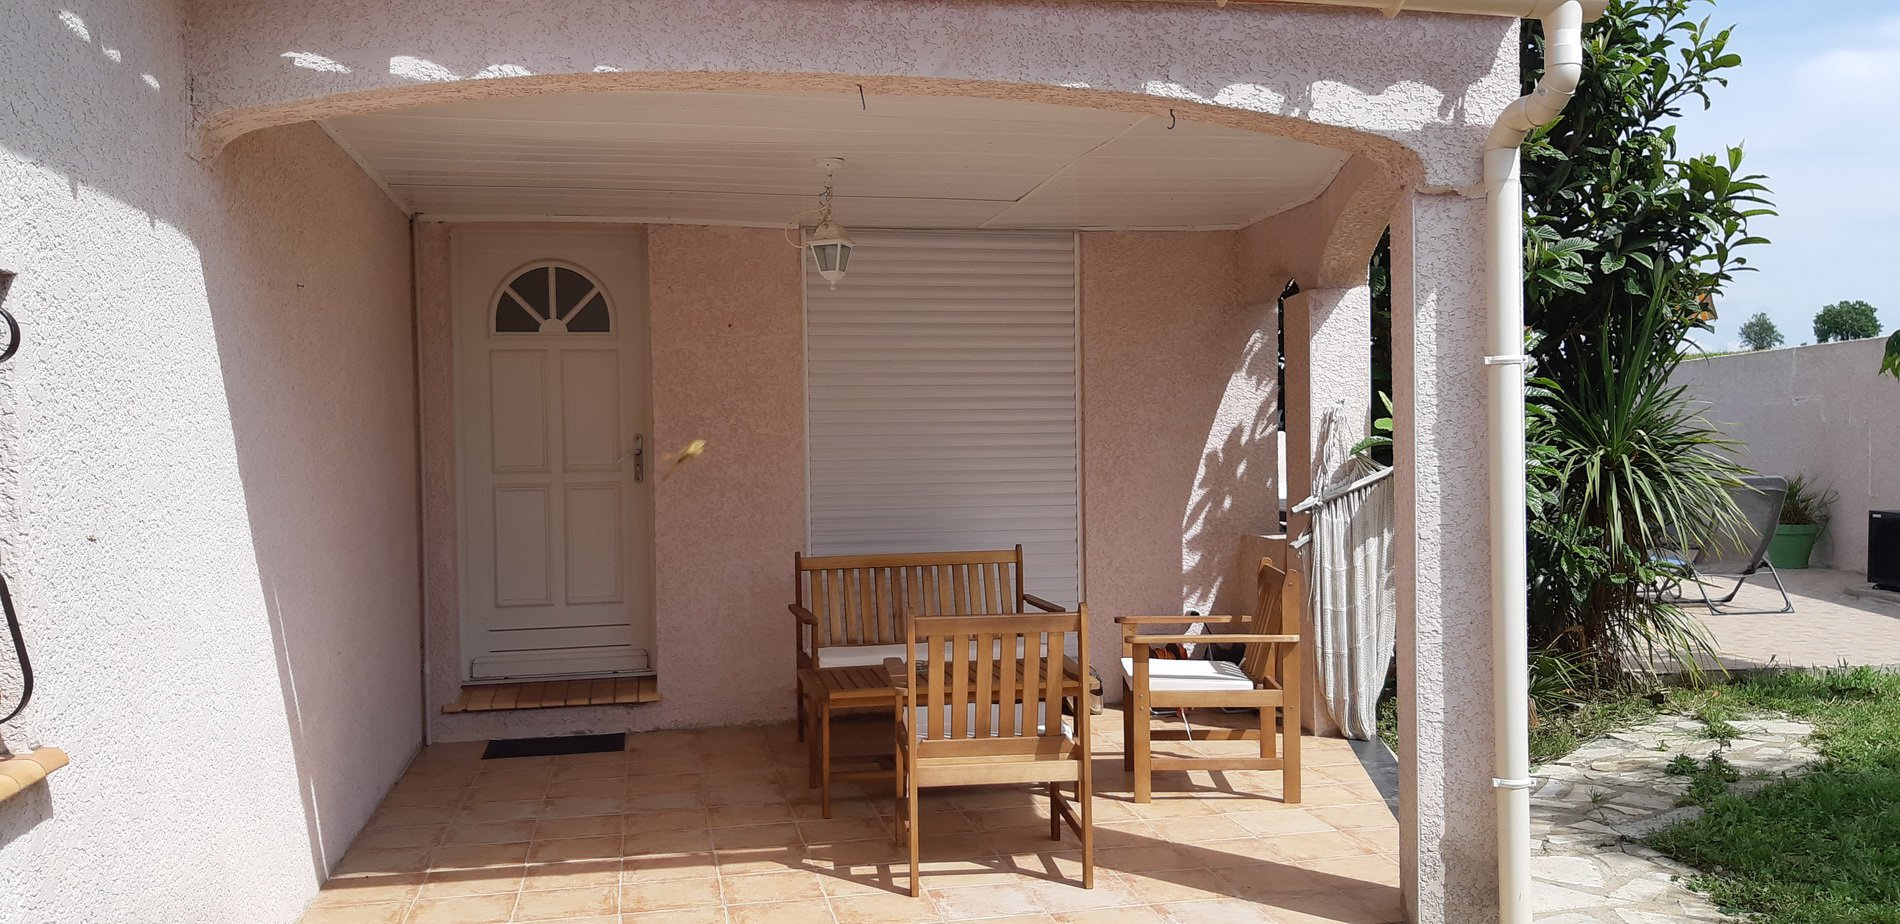 Villa with swimming pool and independent apartment. Very rare product!